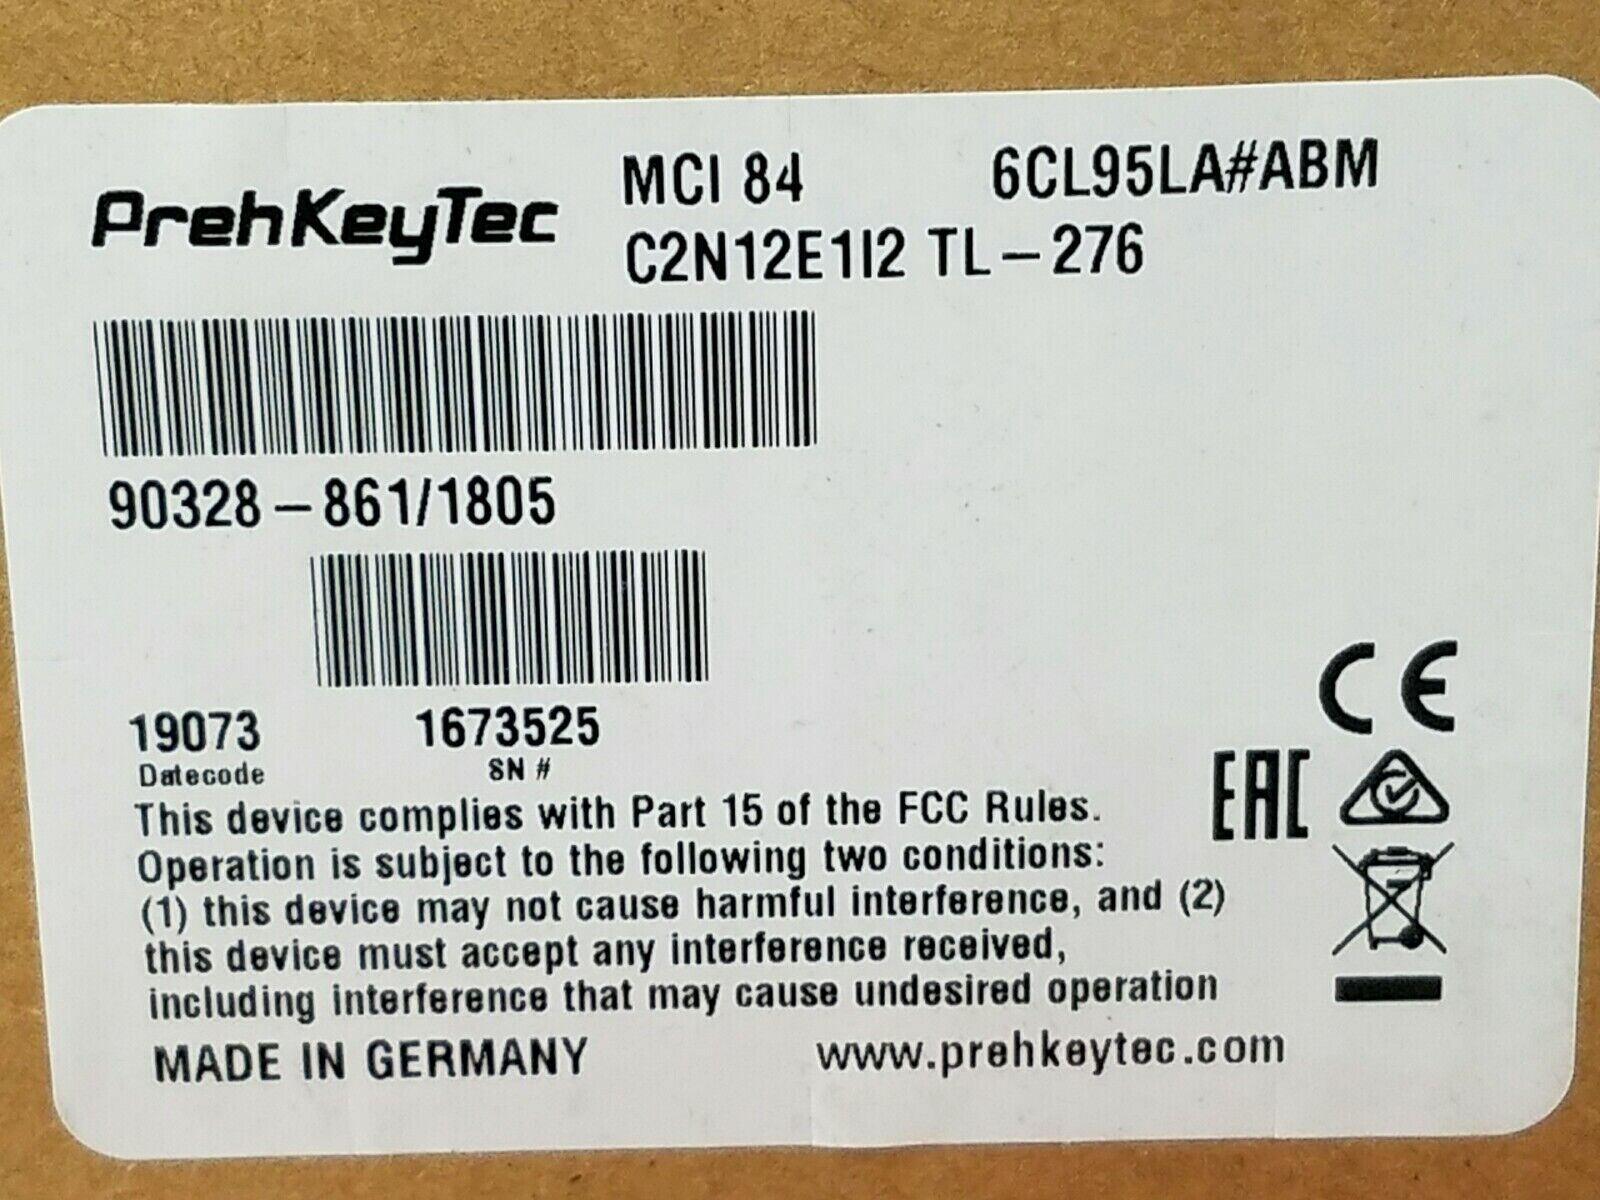 PrehKeyTec MCI 84 USB POS Keyboard Spanish Keys No Card Reader 903288611805 New